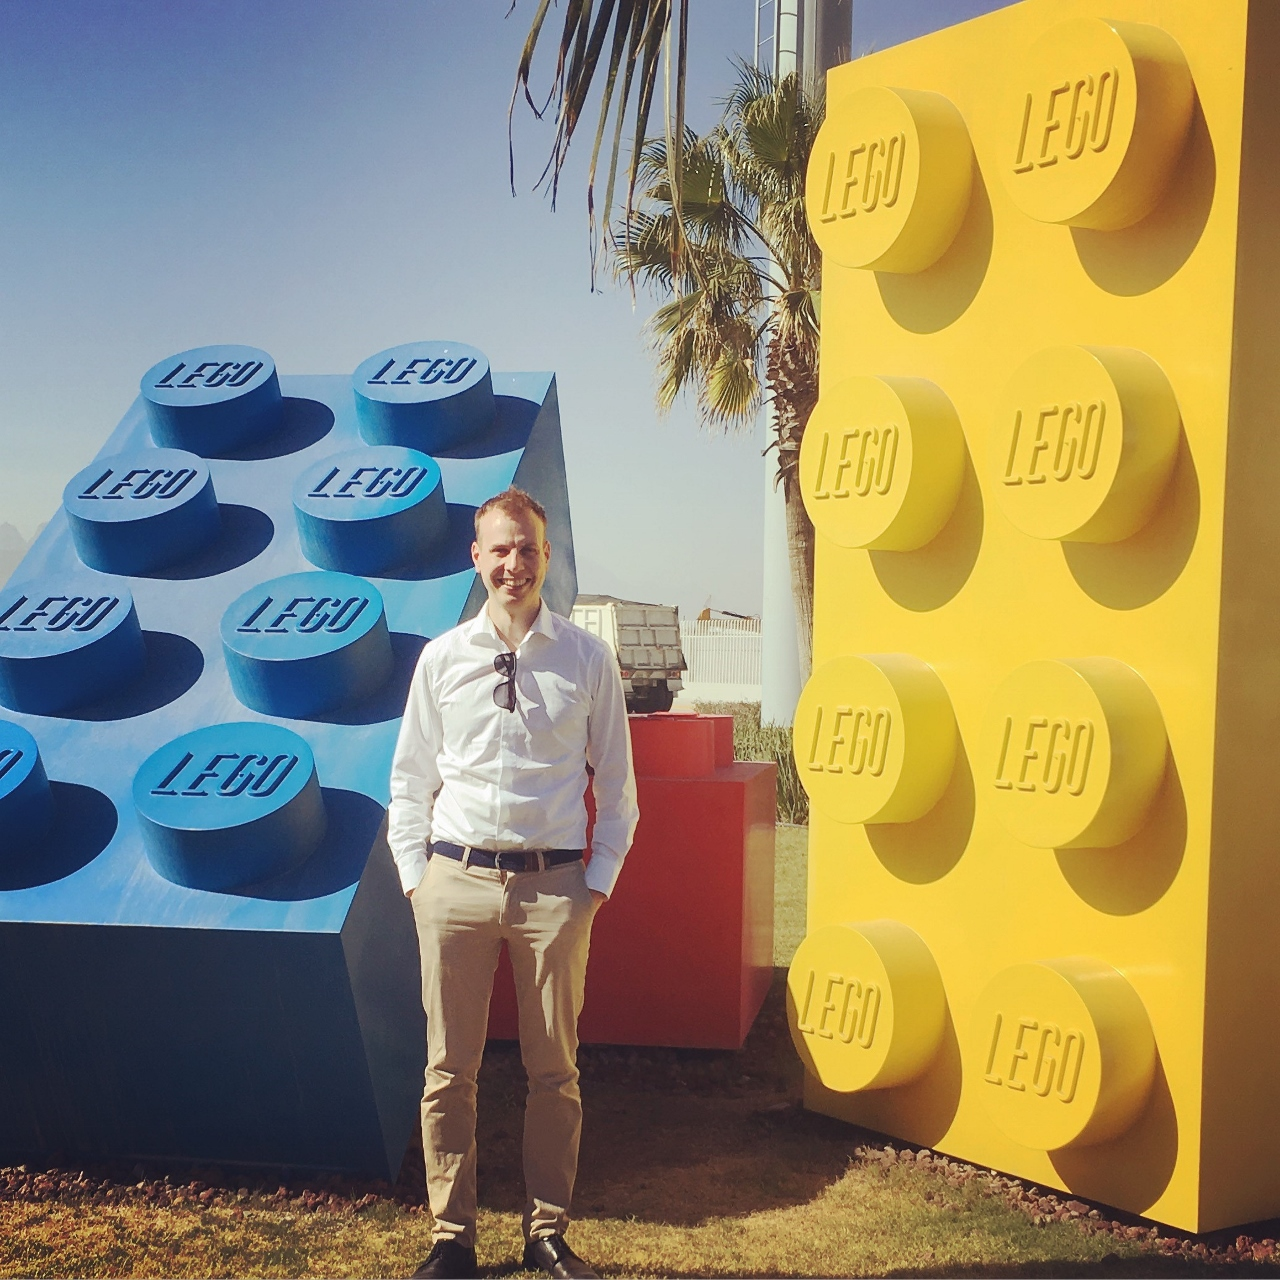 FlexQube CEO with Lego